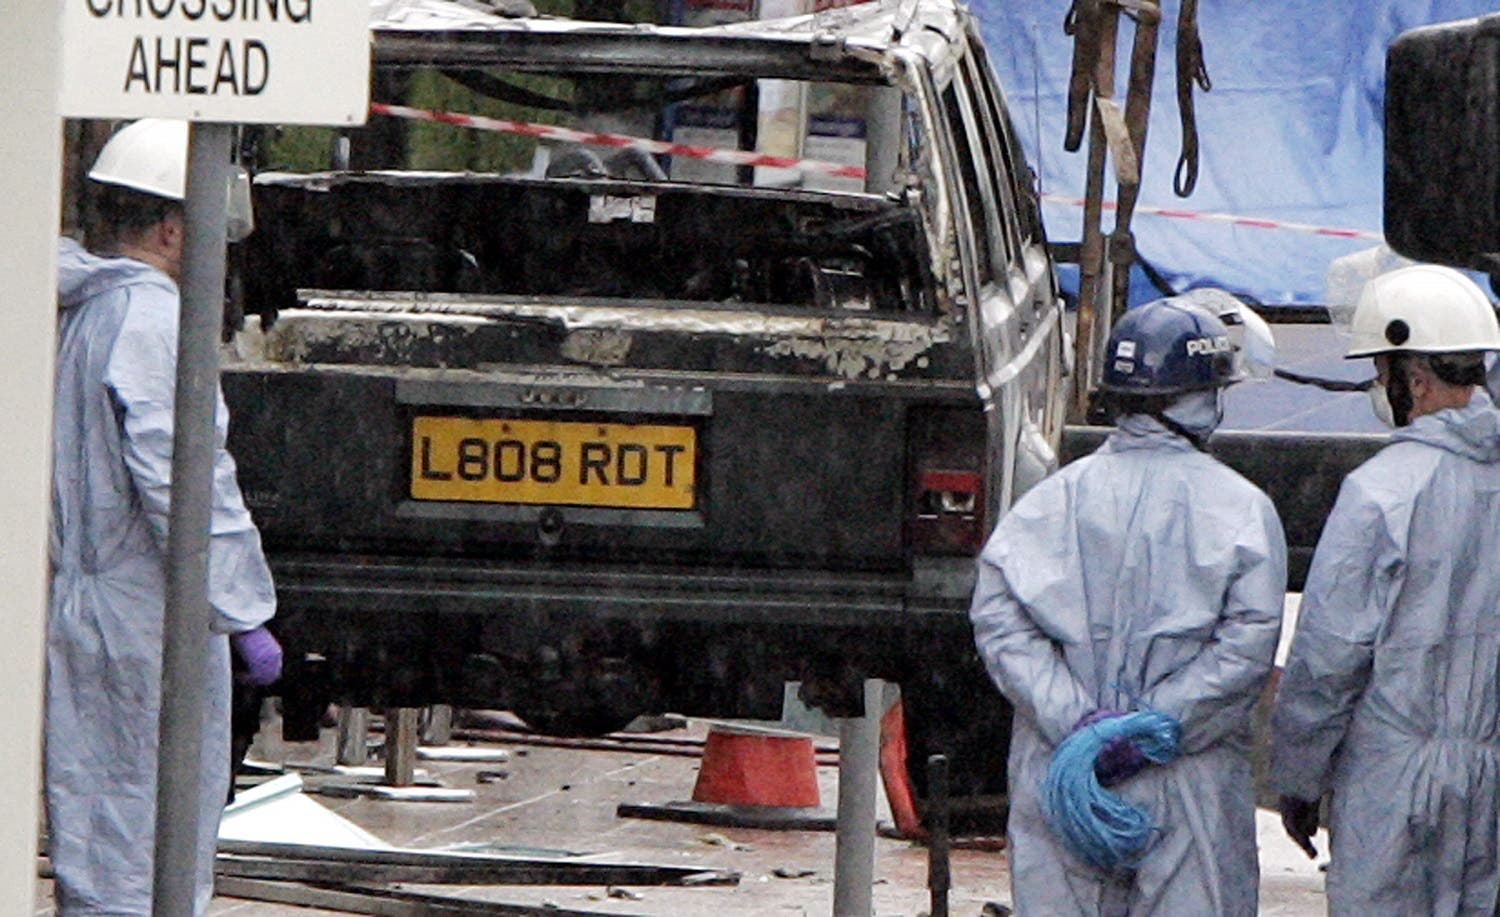 Police forensics view the remain's of the burnt out jeep being lifted from the scene at Glasgow International Airport, 01 July 2007 where a Jeep Cherokee rammed and burst into flames in a terror attack at Scotland's Glasgow Airport. (AFP)